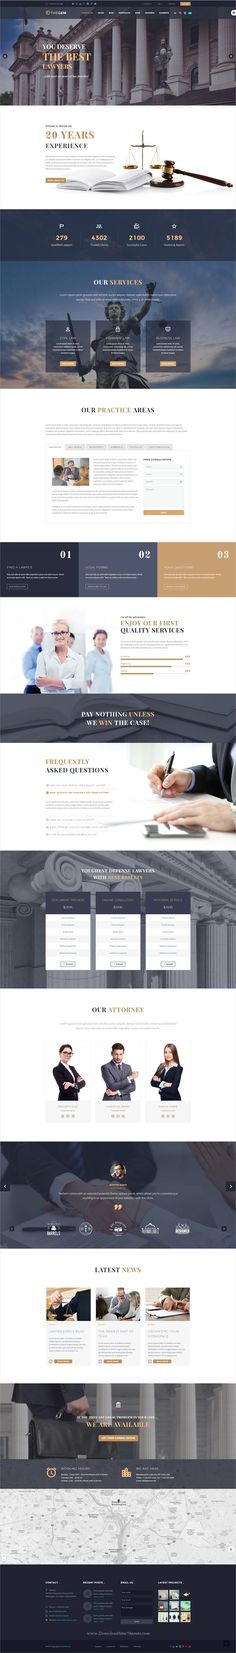 TheGem is creative multipurpose #PSD template for awesome #lawyer #lawfirms websites and huge variety of design or web projects with 50+ homepage layouts & 200+ layered PSD files download now➩ https://themeforest.net/item/thegem-creative-multipurpose-psd-template/19746346?ref=Datasata